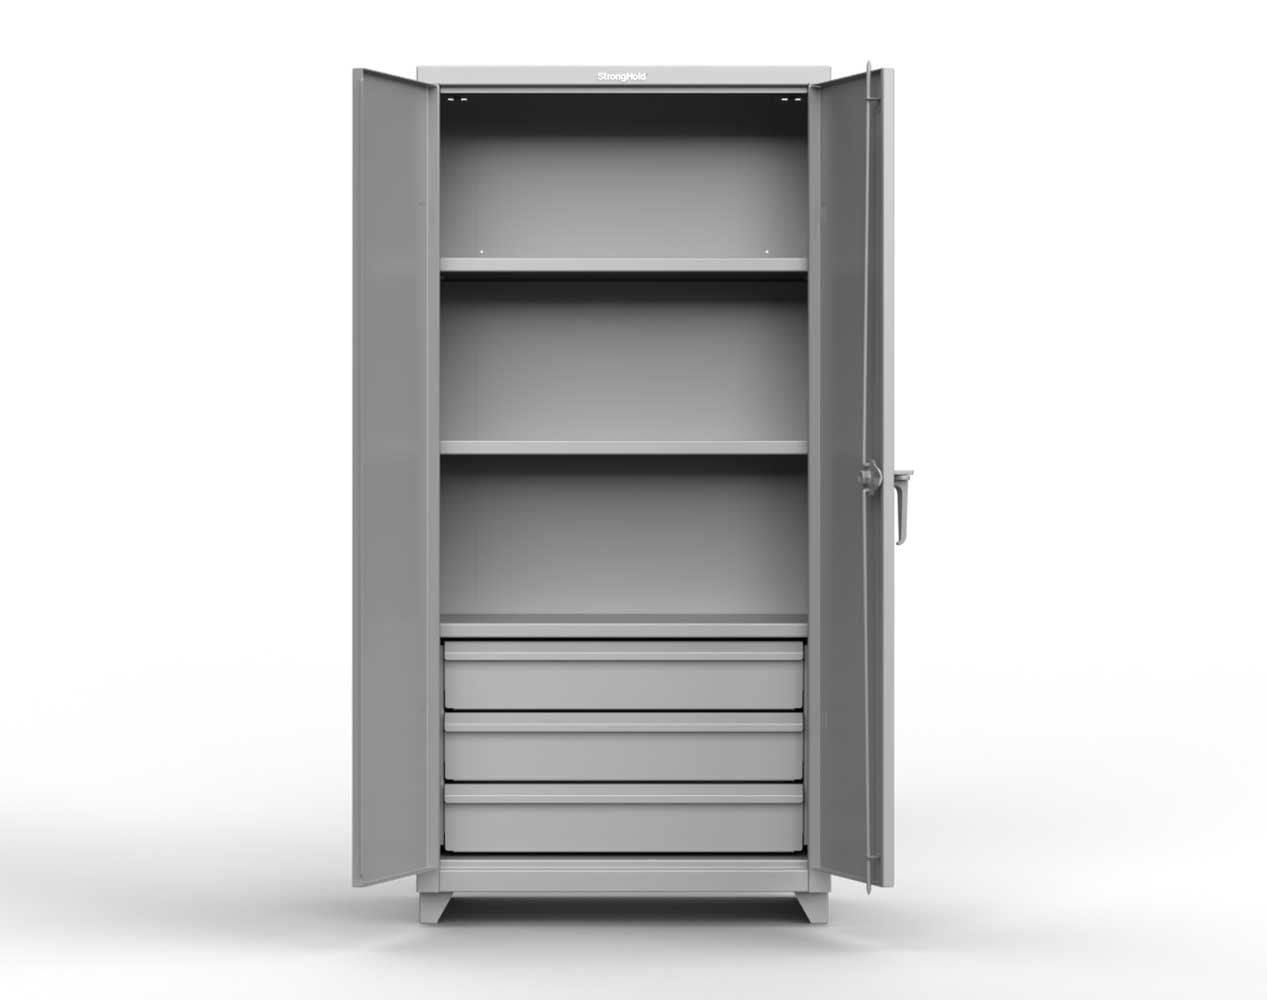 Heavy Duty 14 GA Cabinet with 3 Drawers, 4 Shelves – 36 In. W x 24 In. D x 75 In. H